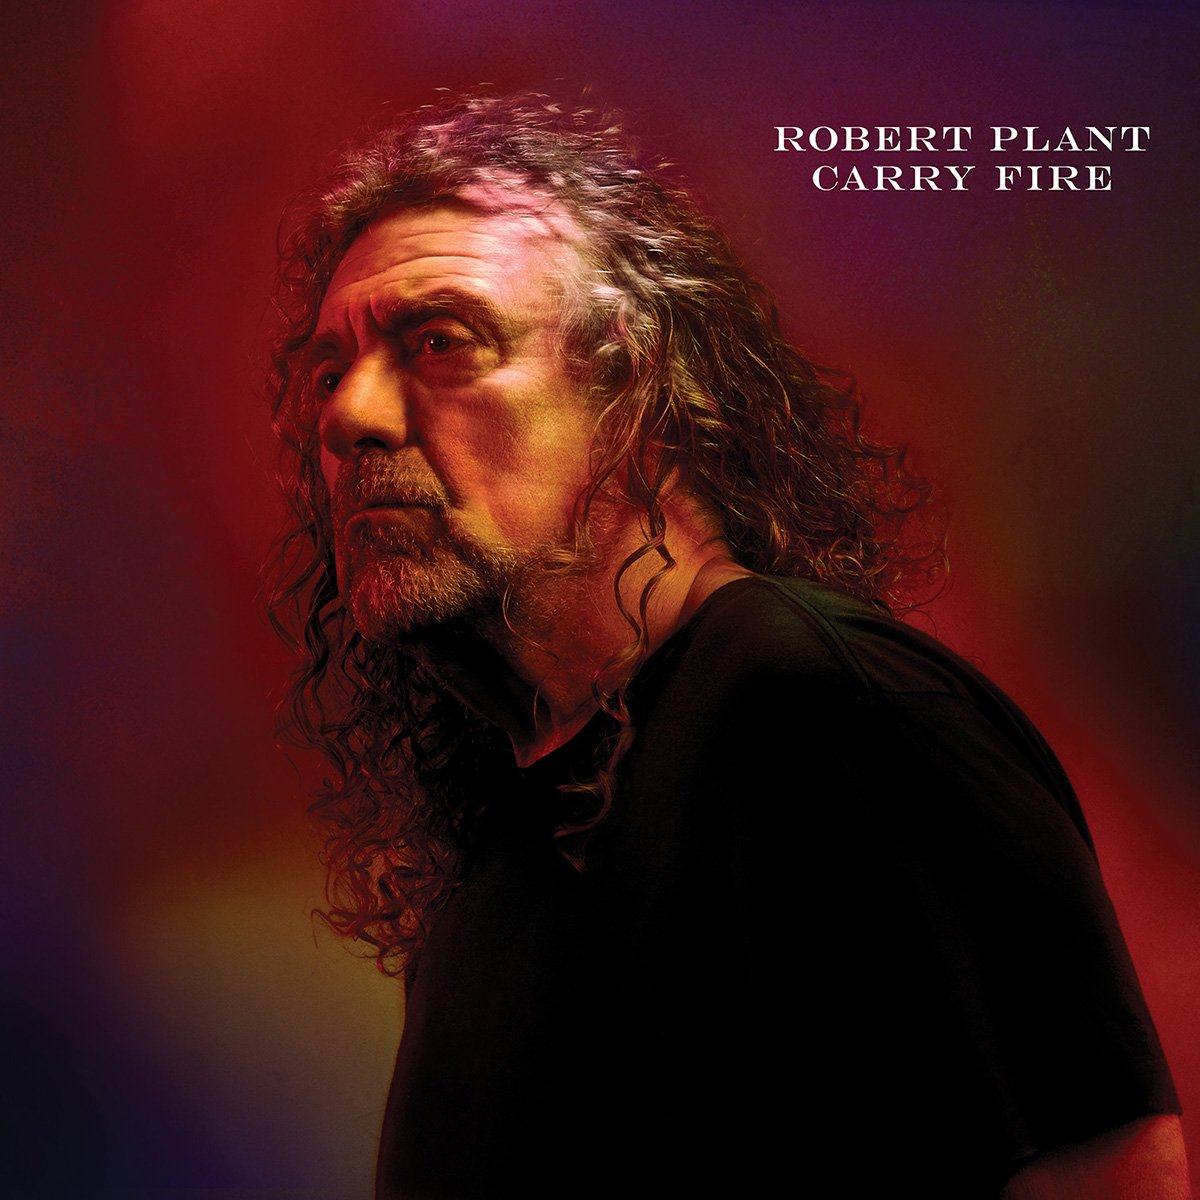 Artwork for Robert Plant's 2017 album Carry Fire